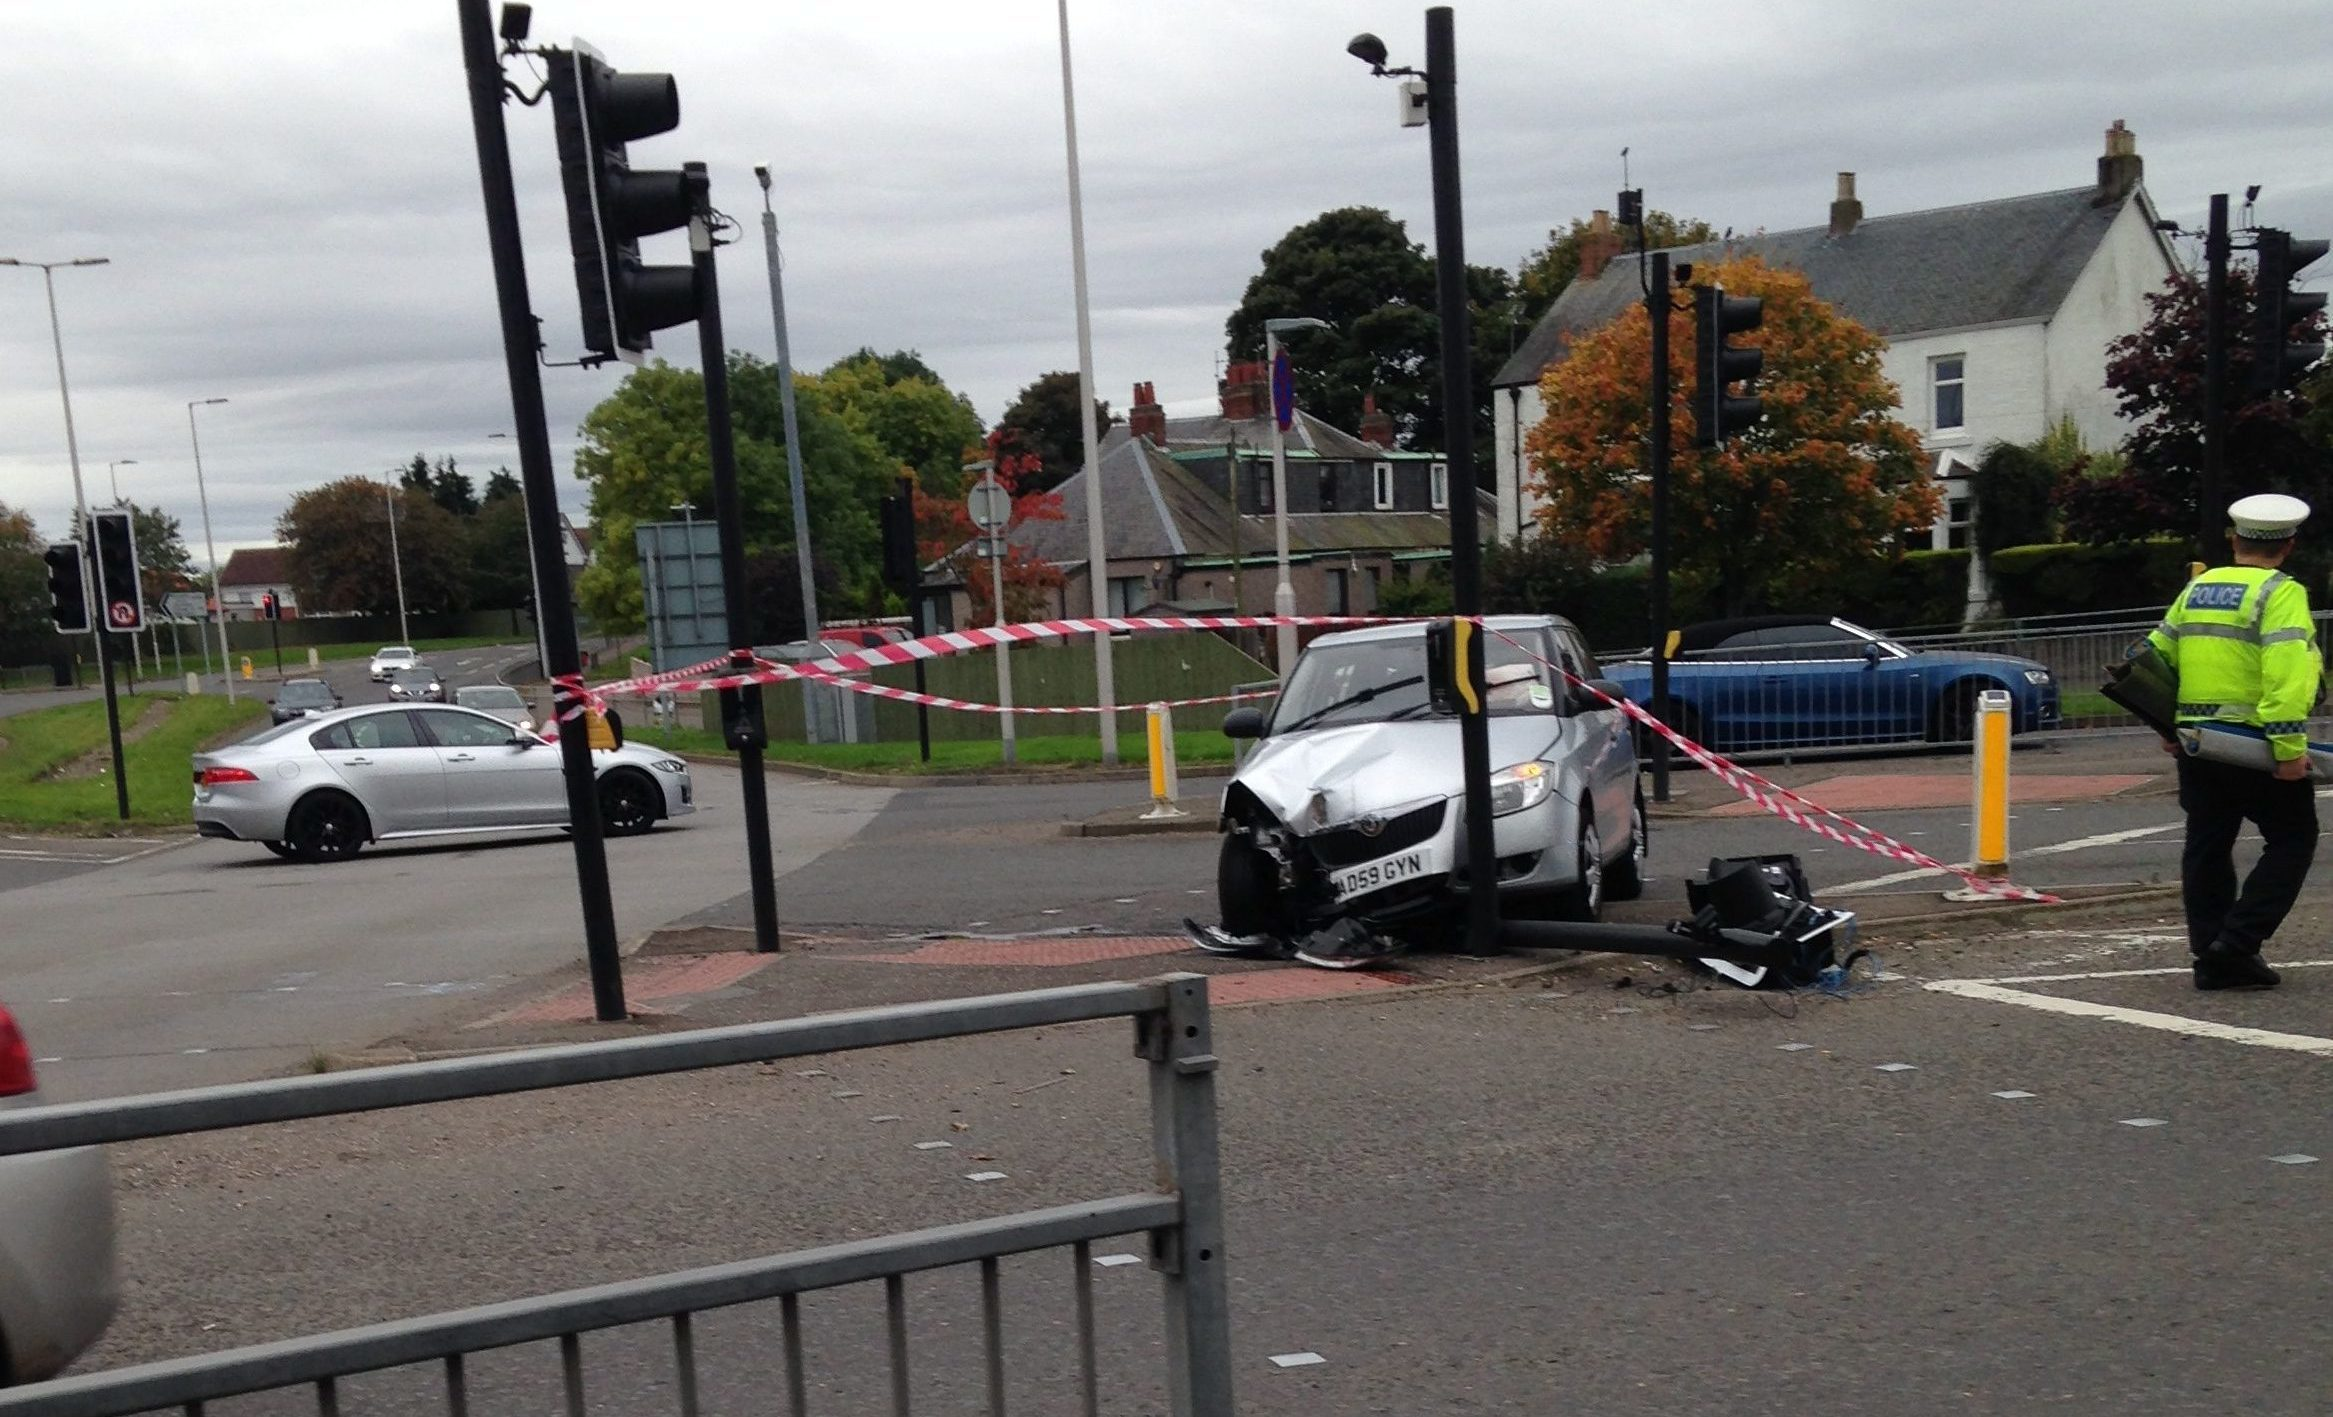 The elderly driver collided with a set of traffic lights